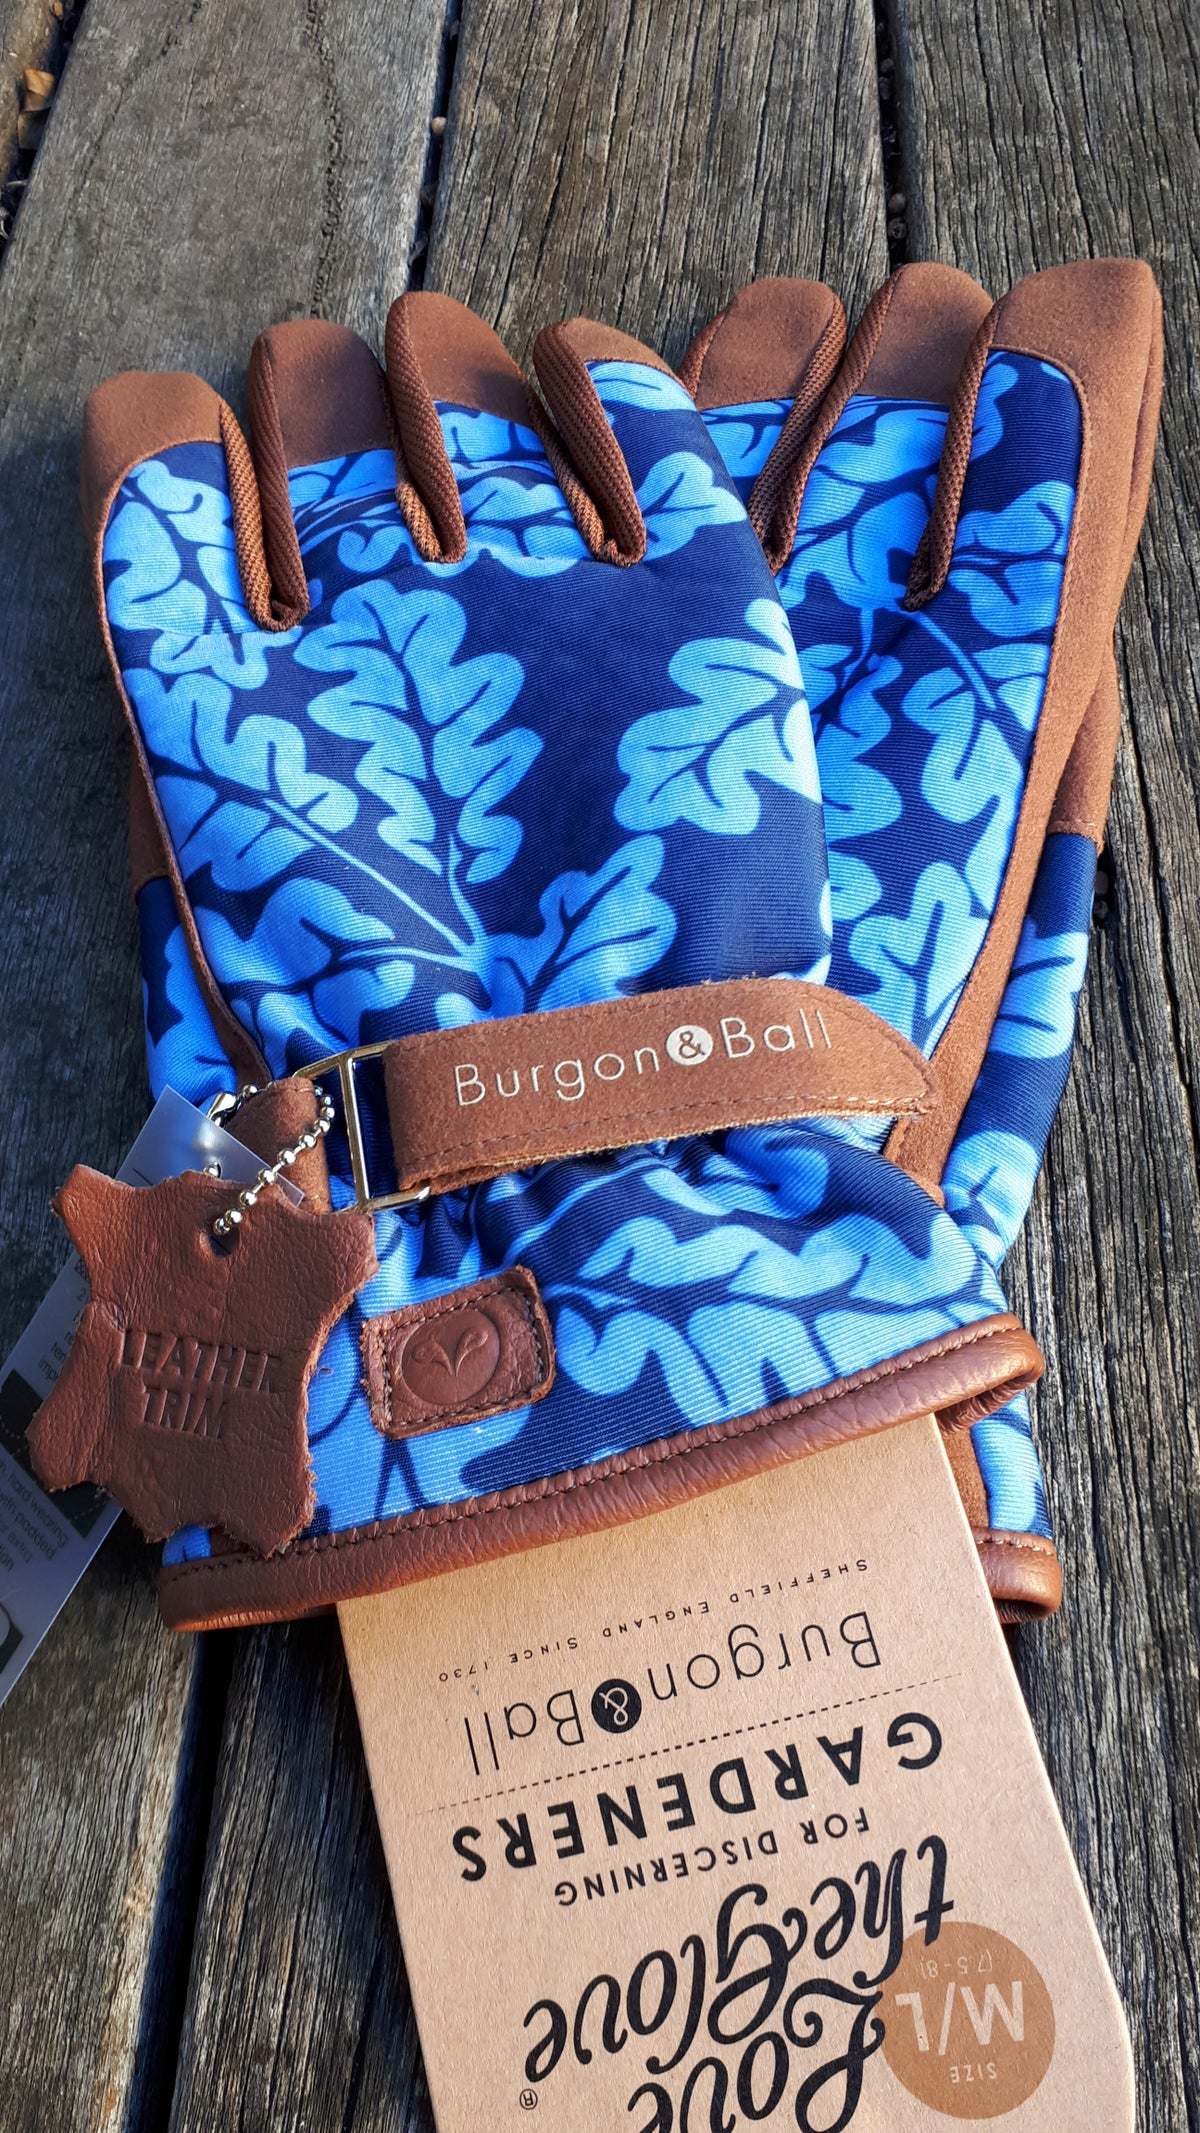 Image of Burgon & Ball Gardening Gloves